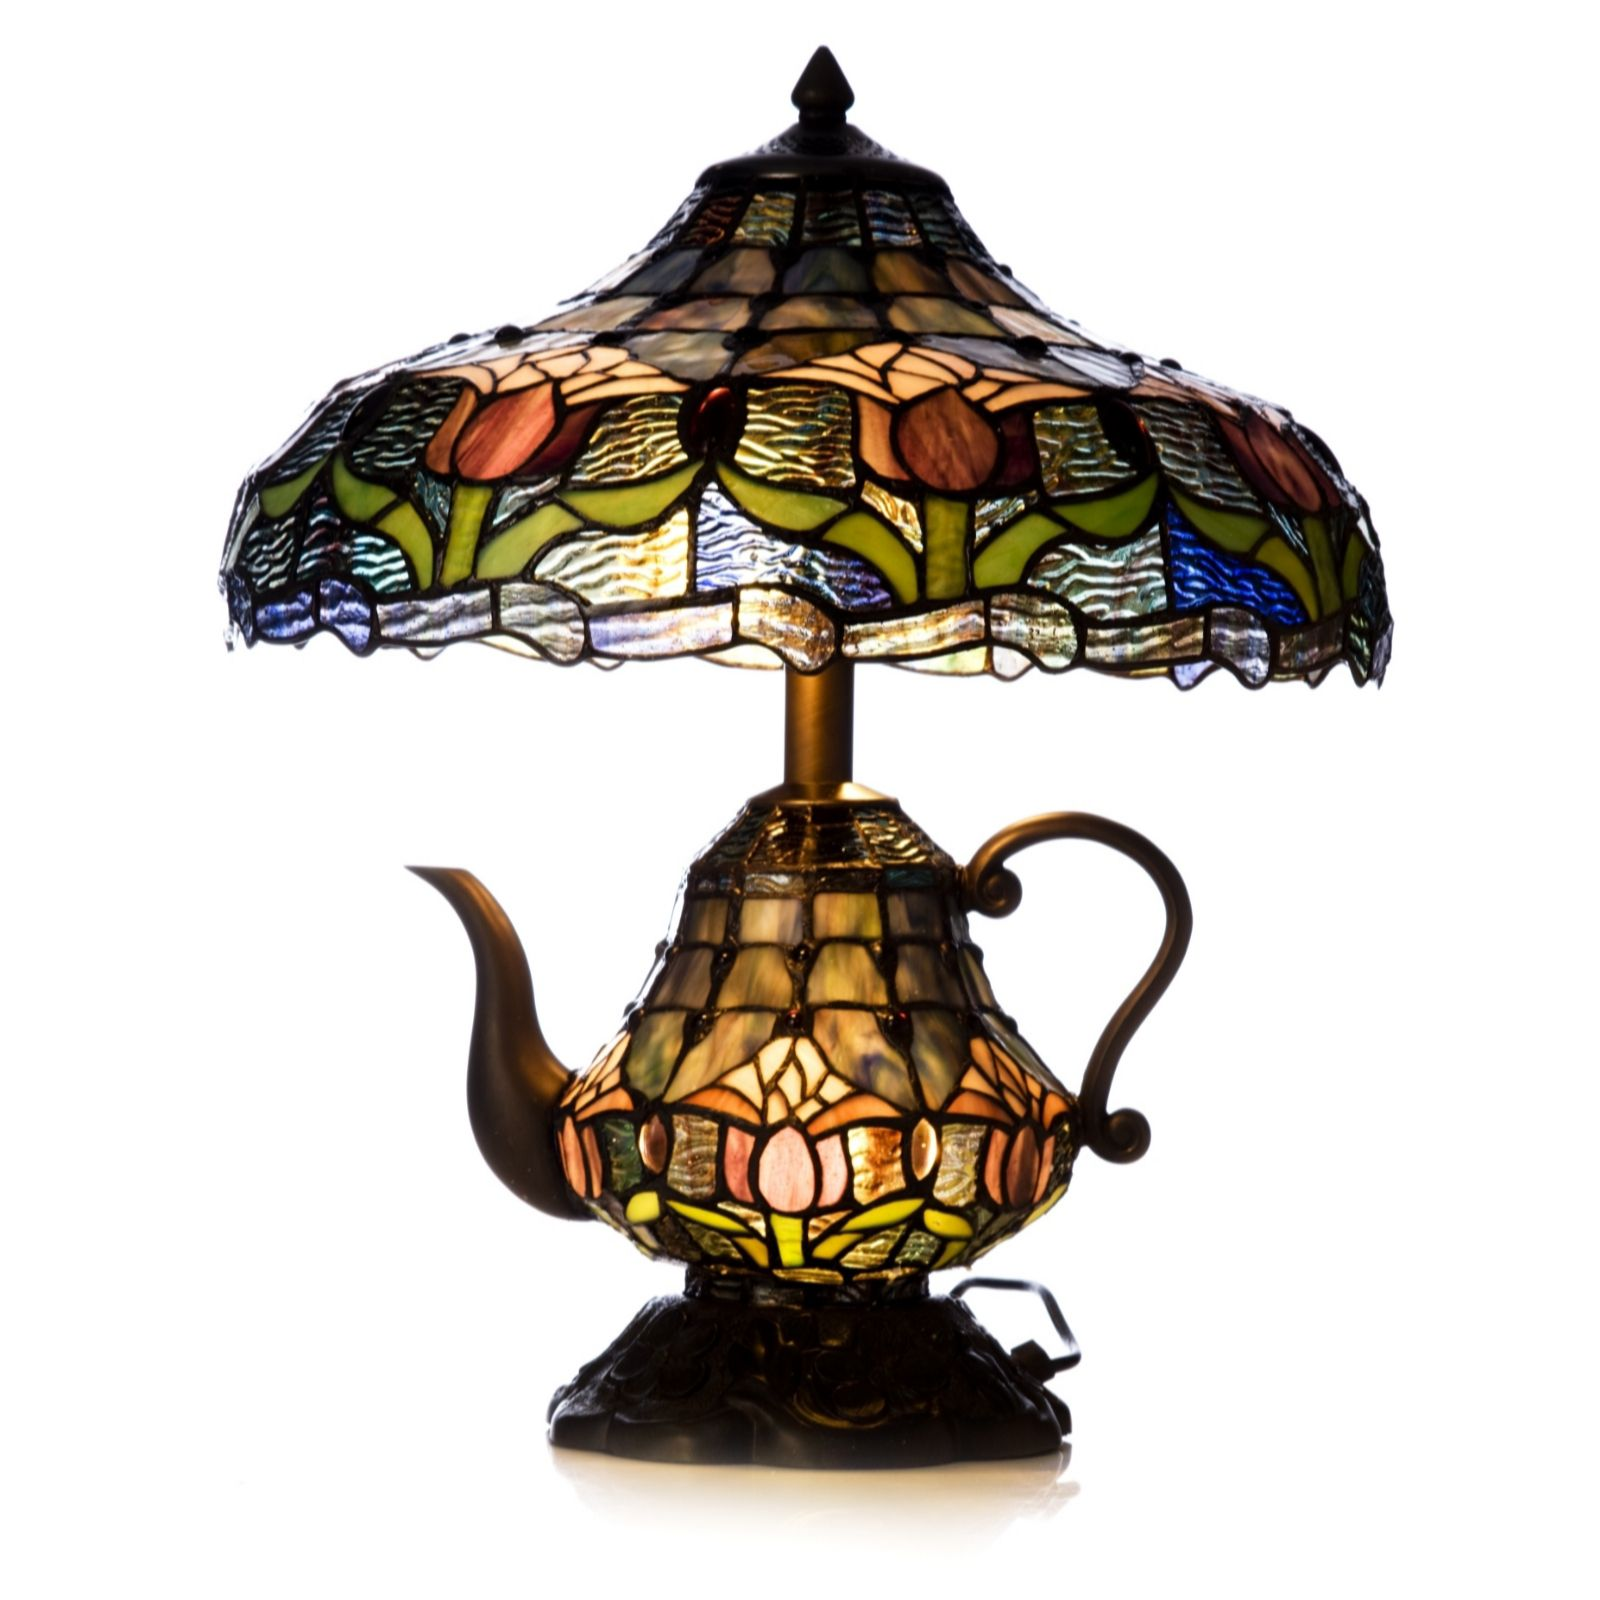 Exceptional Tiffany Style Handcrafted Floral Teapot Novelty Lamp   QVC UK